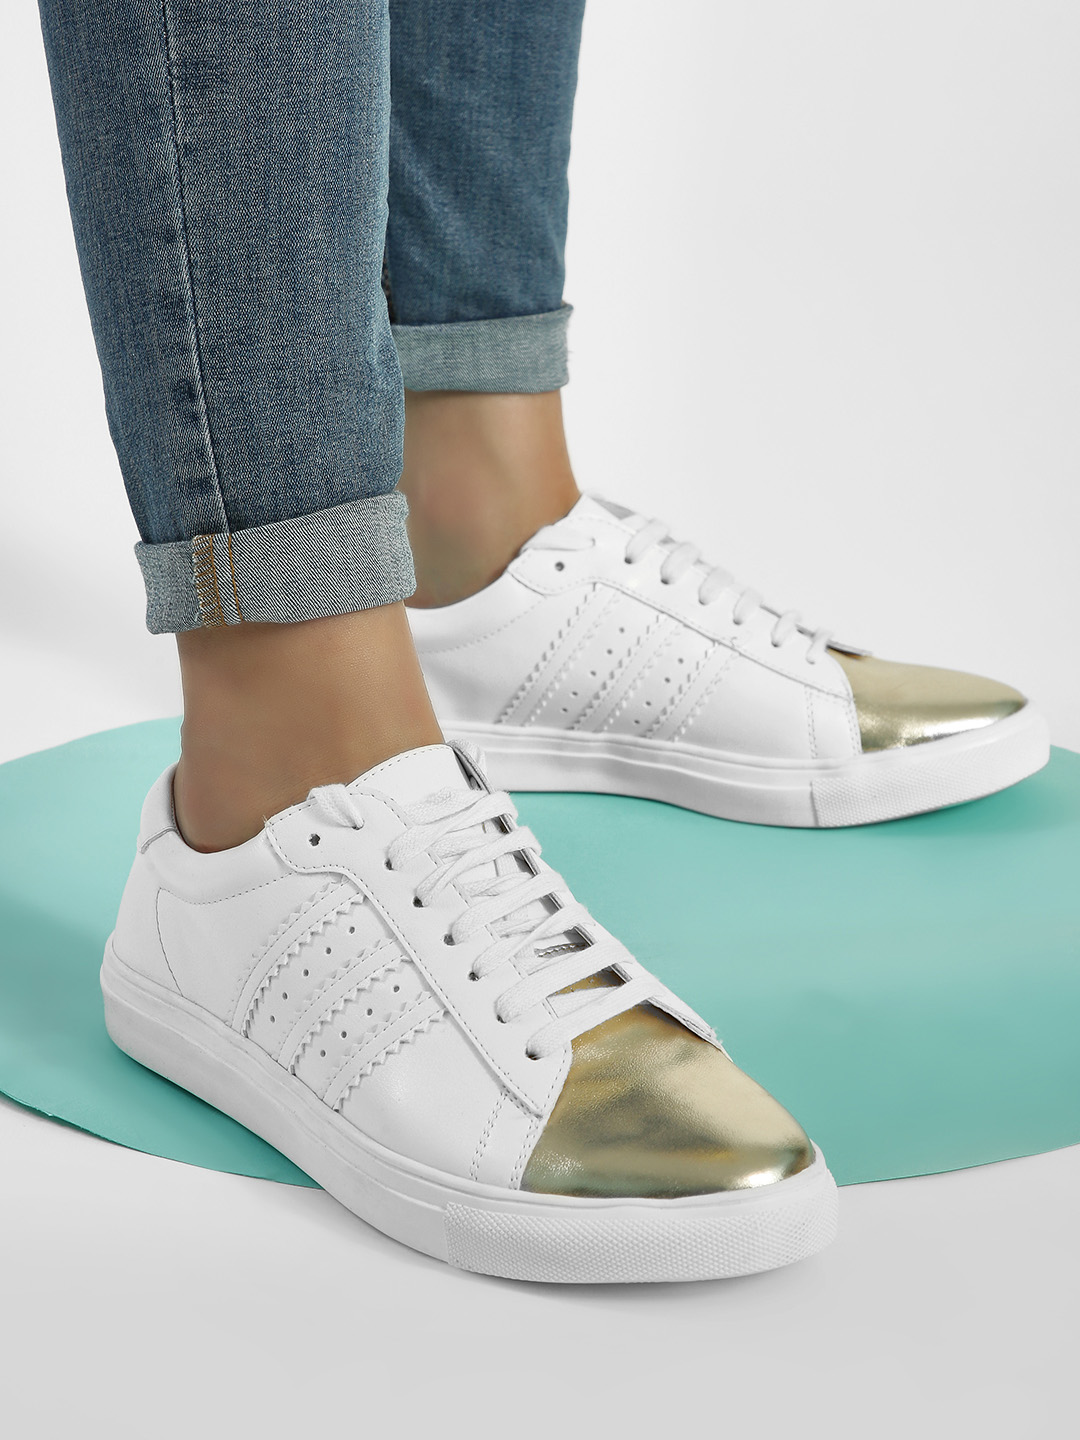 ADORLY Gold Metallic Toe Panelled Sneakers 1